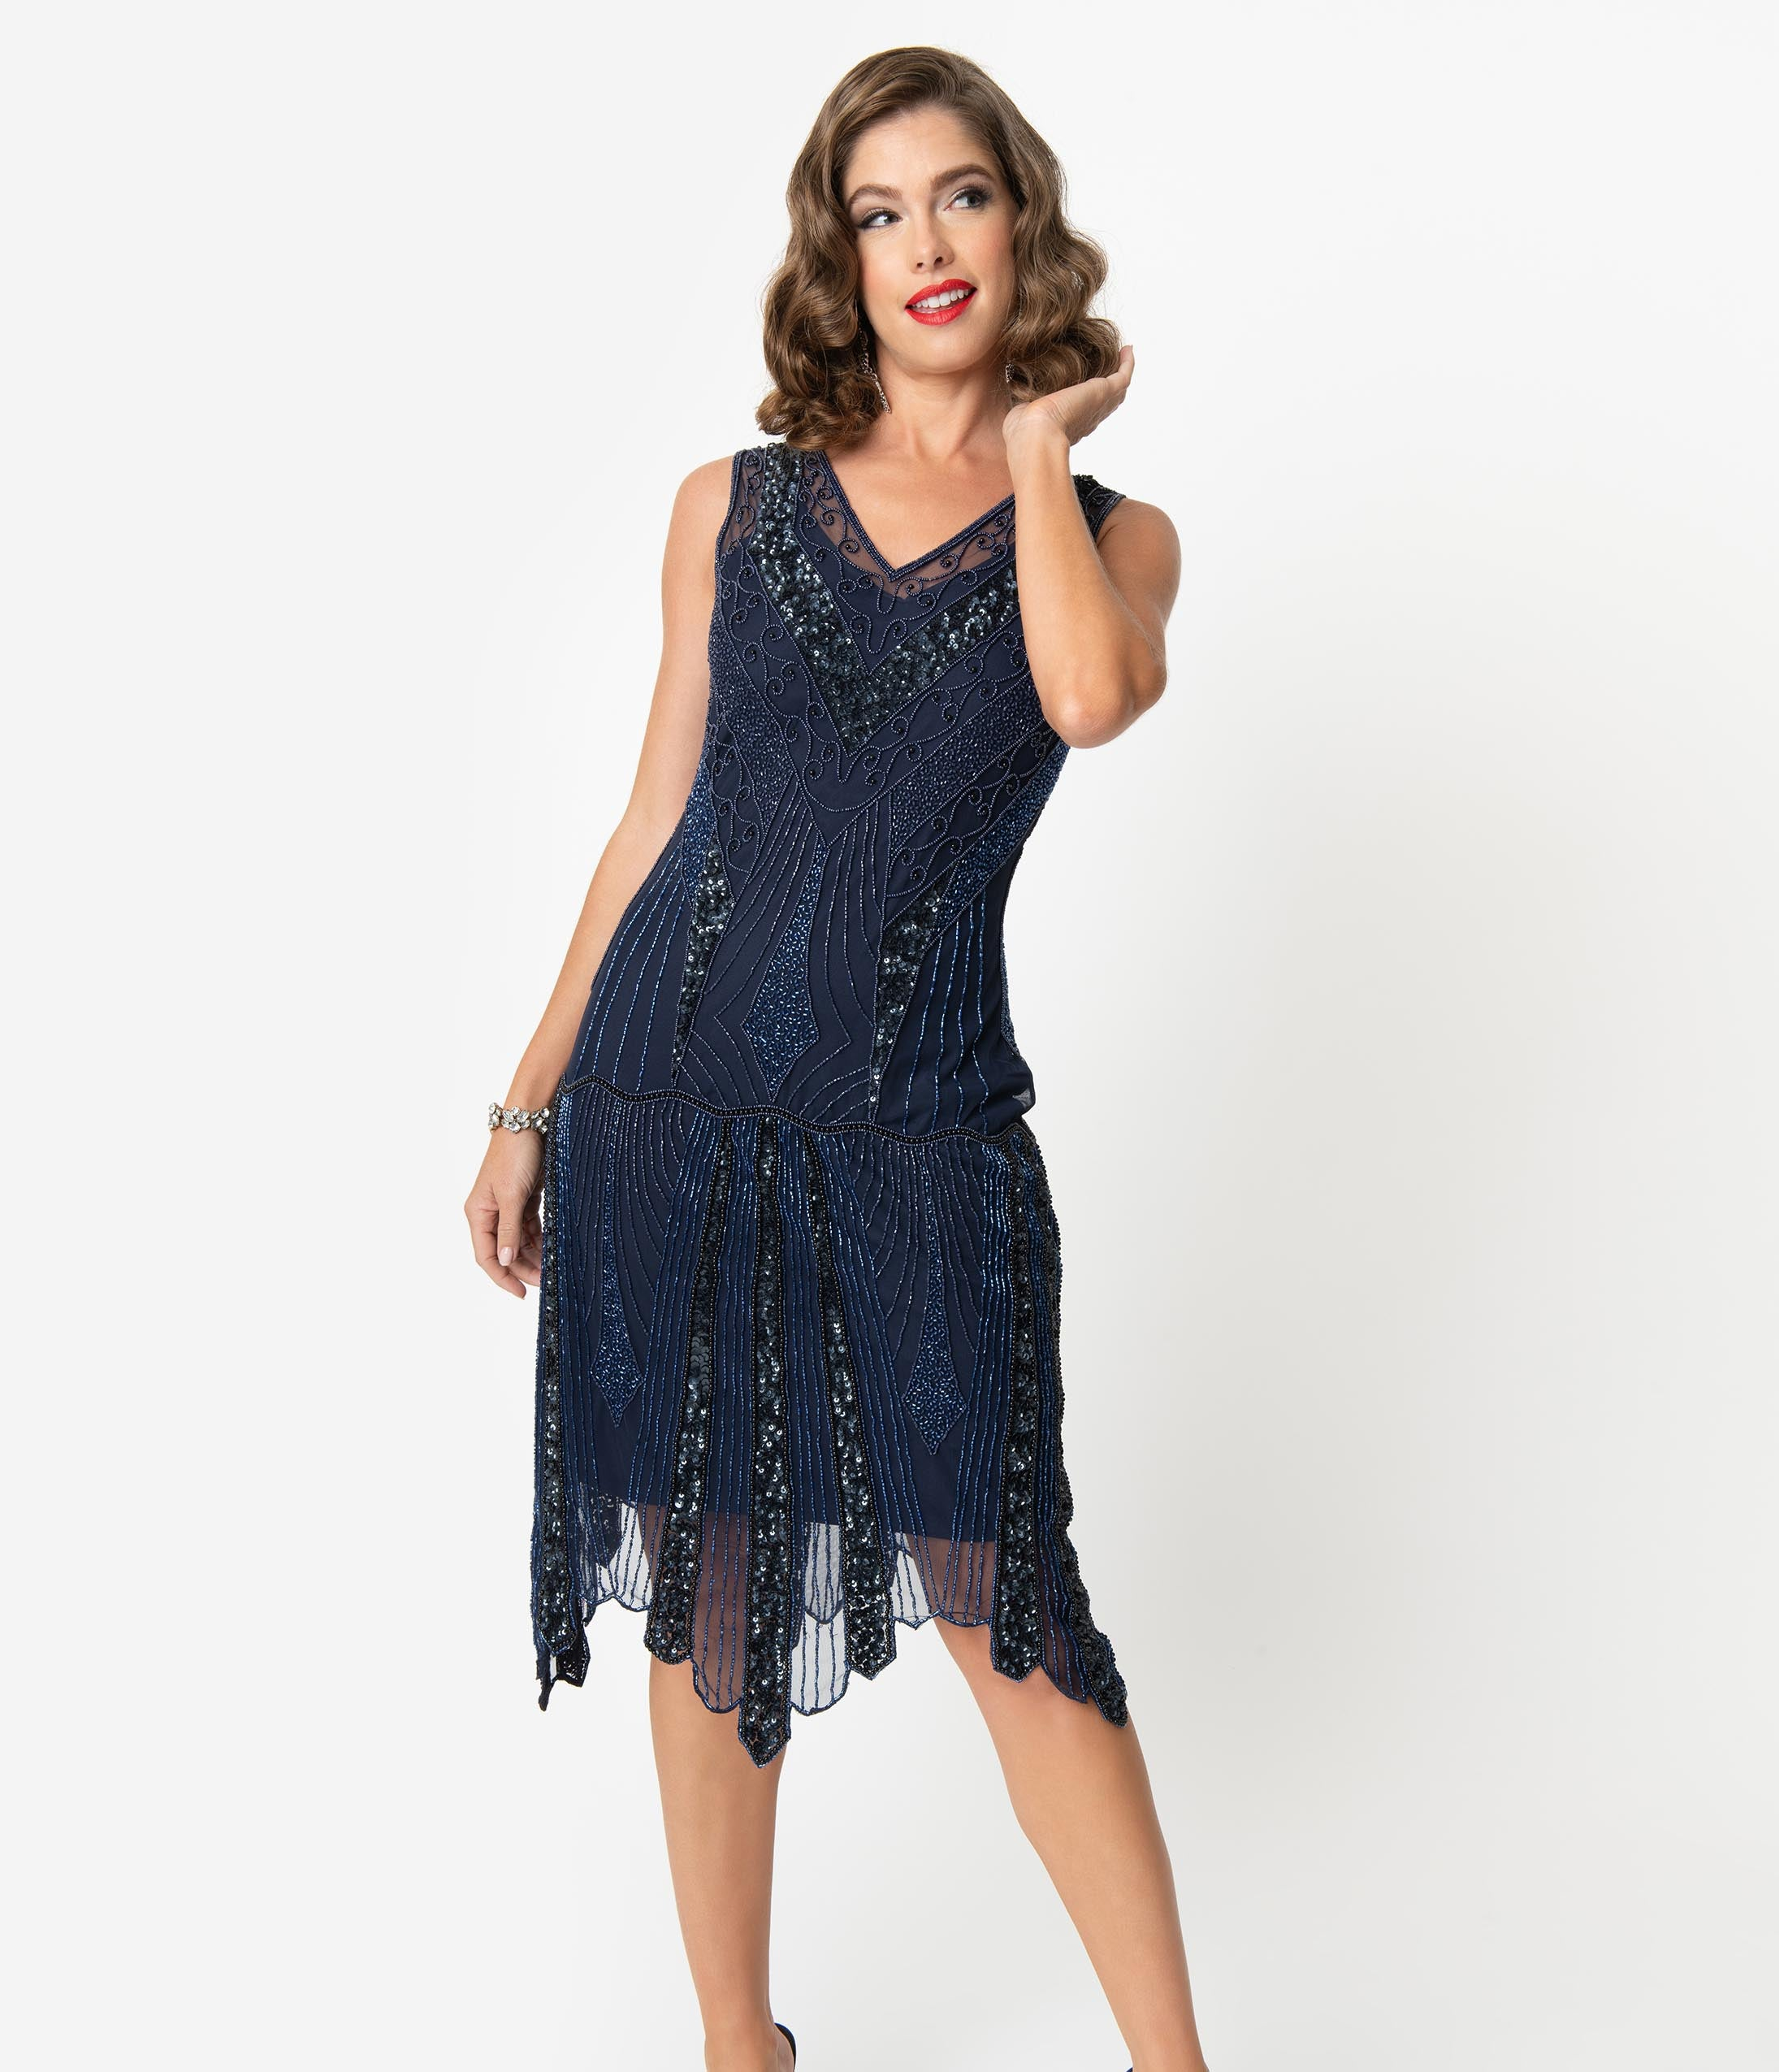 20s Dresses | 1920s Dresses for Sale 1920S Style Navy Blue Beaded Deco Sleeveless Renee Flapper Dress $178.00 AT vintagedancer.com